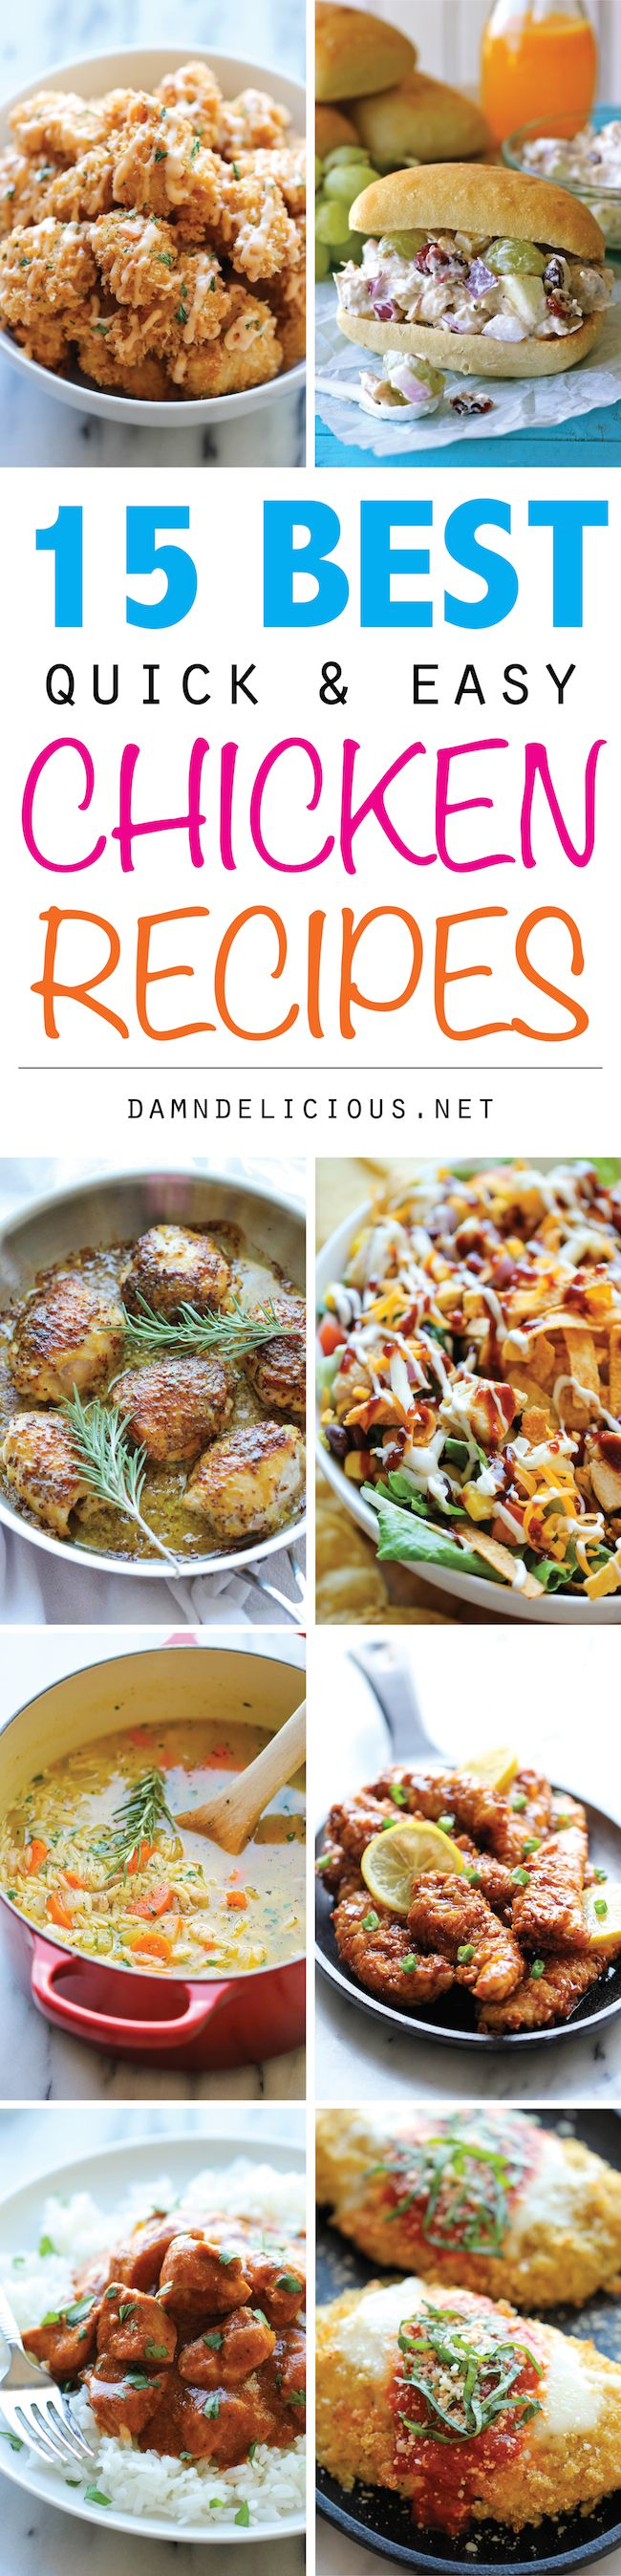 15 Best Quick and Easy Chicken Recipes - The ultimate guide to quick, easy and budget-friendly chicken recipes - a must for those busy weeknights!